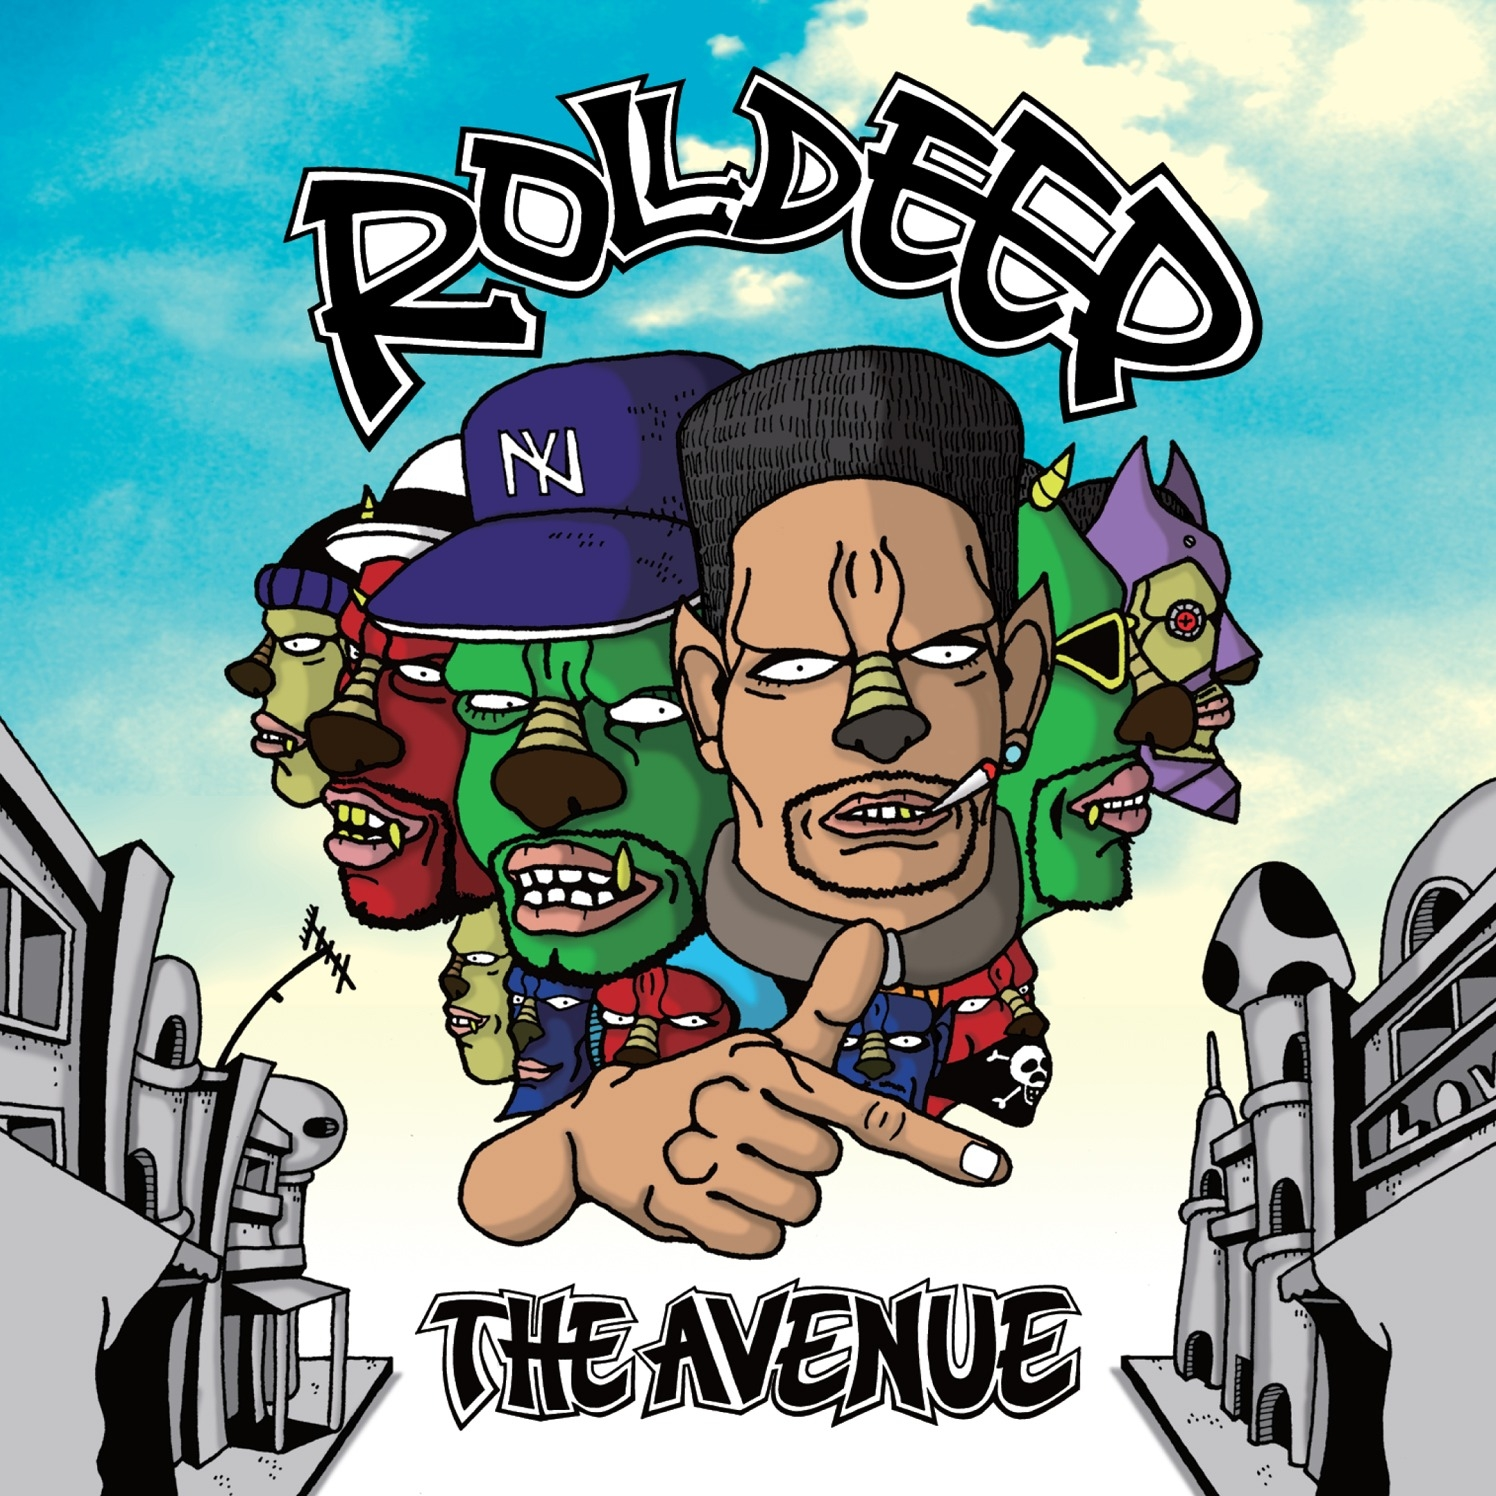 Roll Deep The Avenue